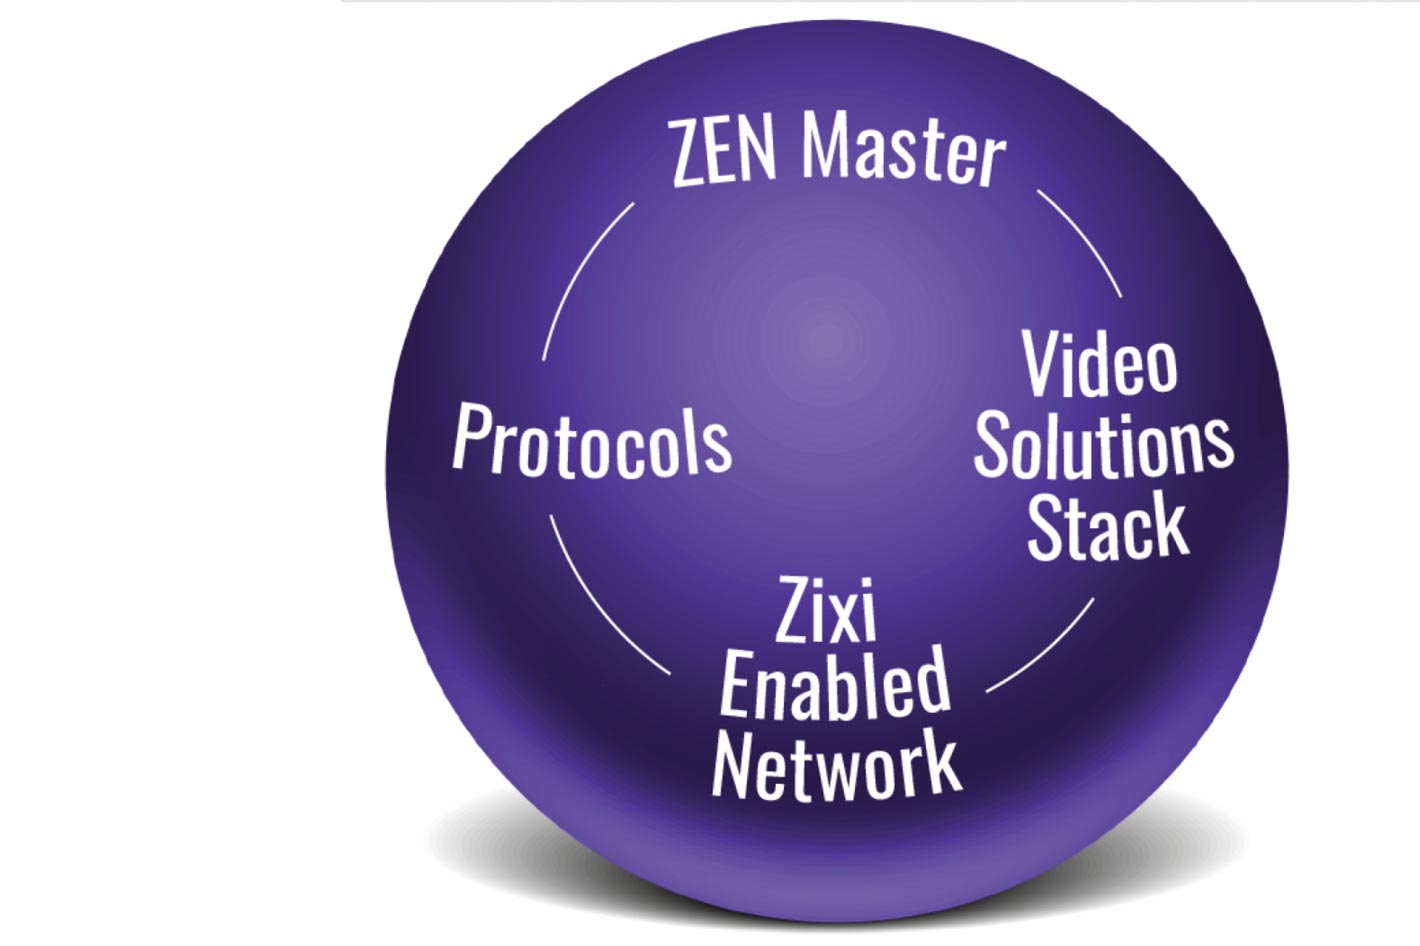 Zixi now offers secure live video ingest over IP using Azure